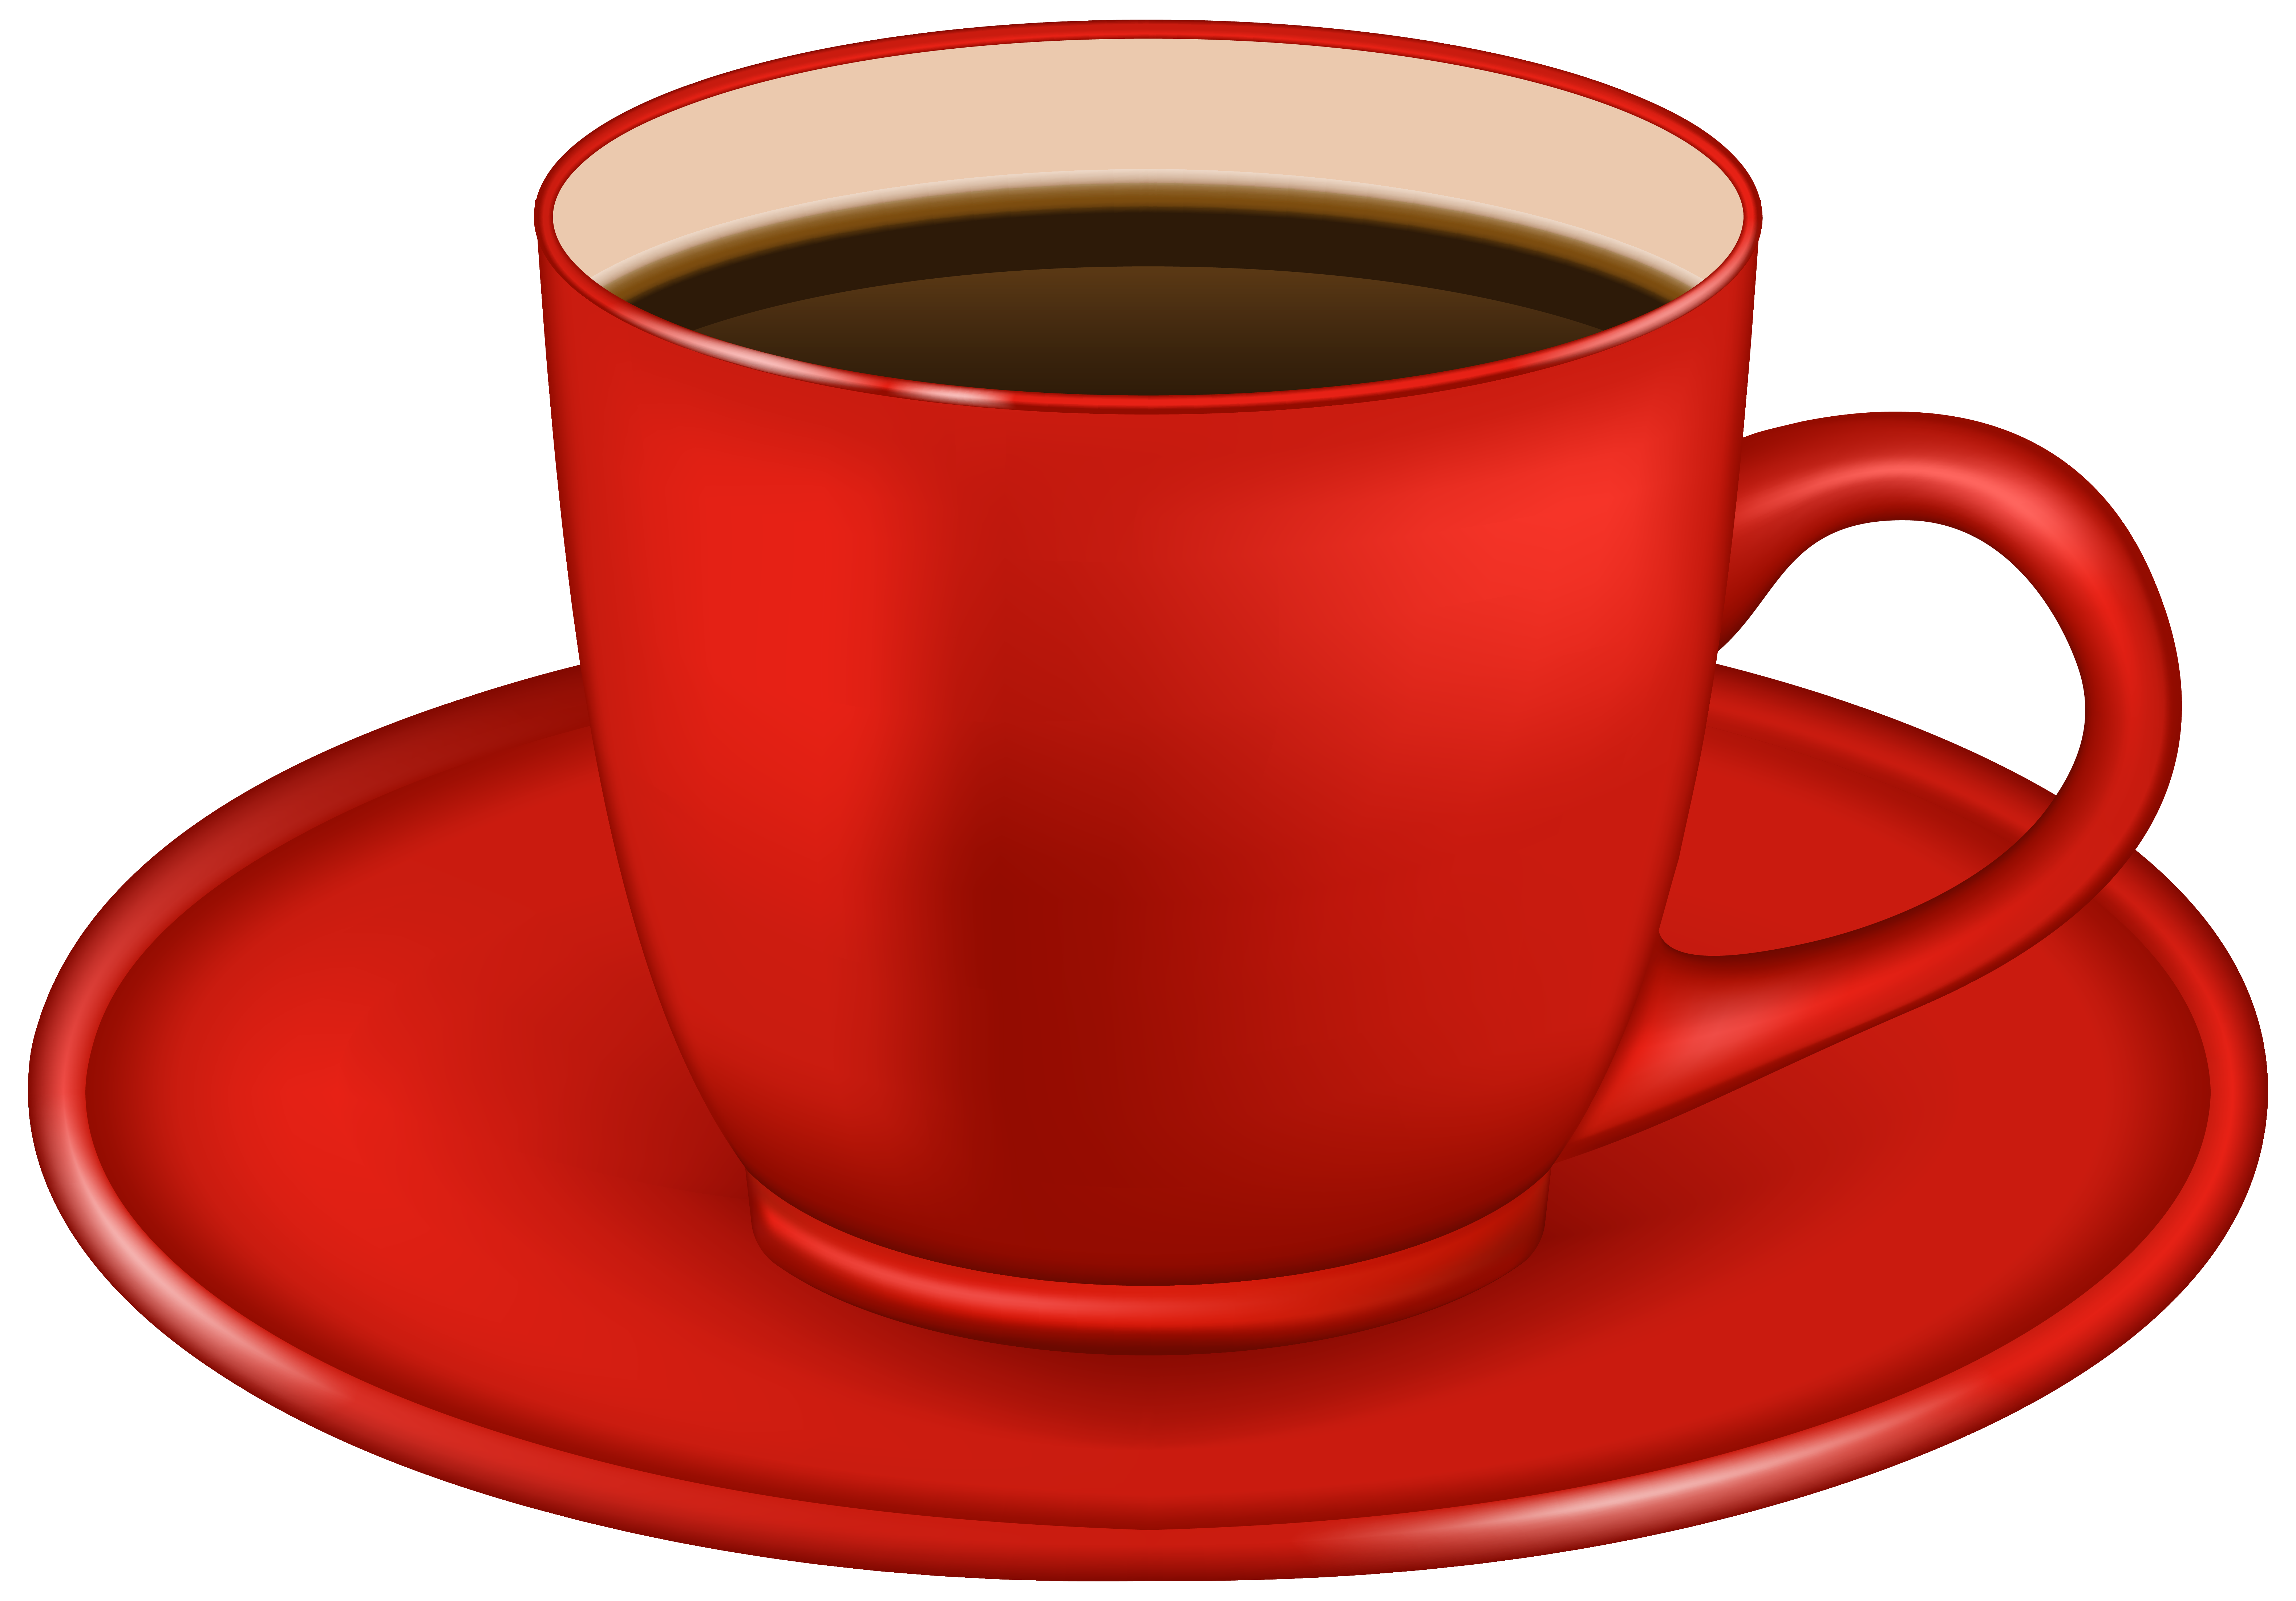 jpg transparent download Break clipart morning tea. Red coffee cup png